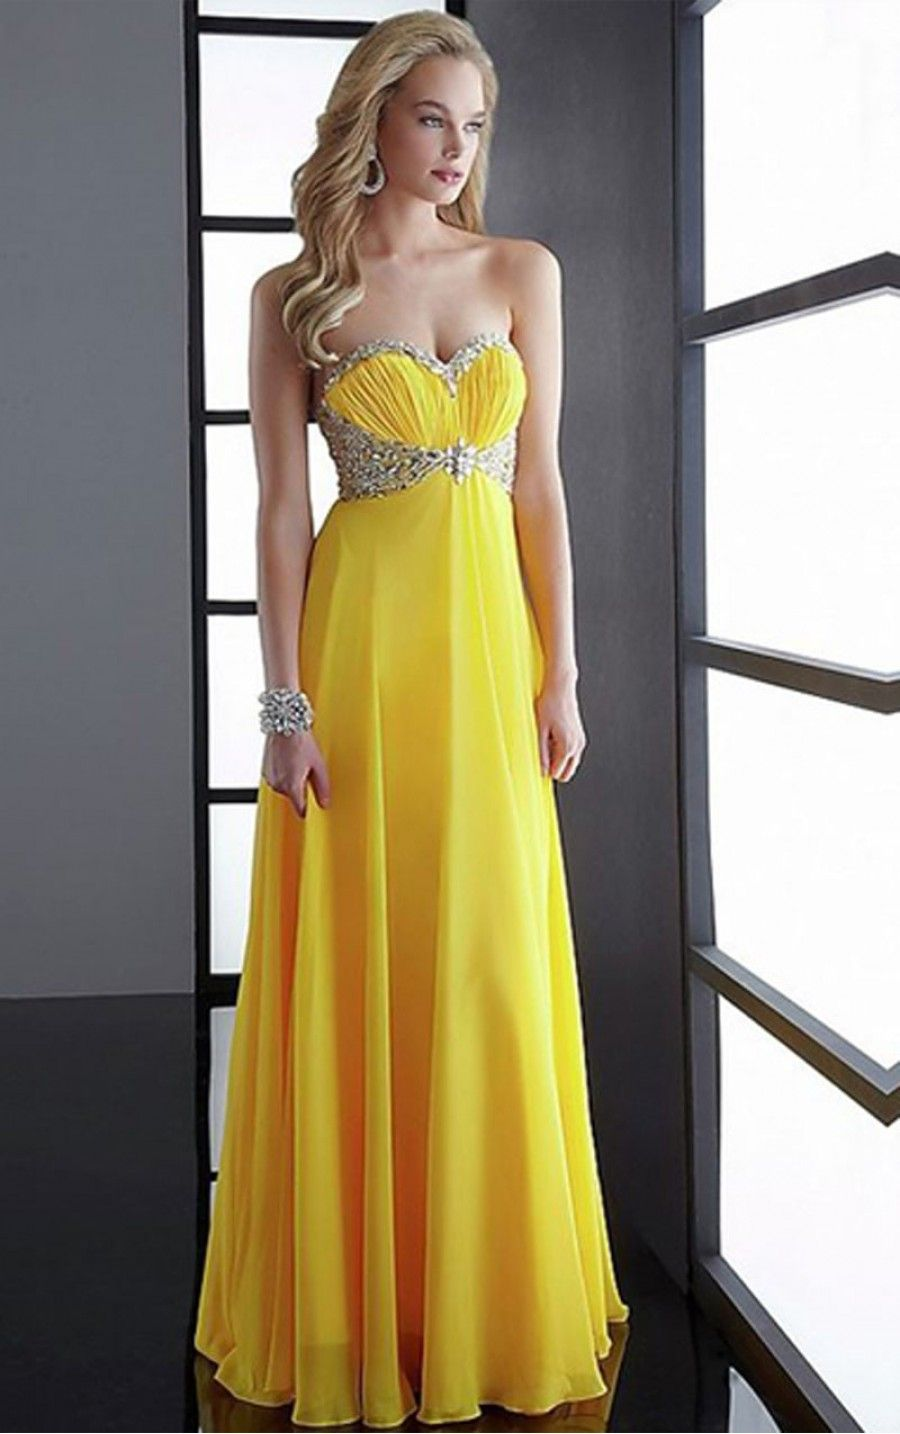 Patterned sequin top pleated yellow long prom dress patterned